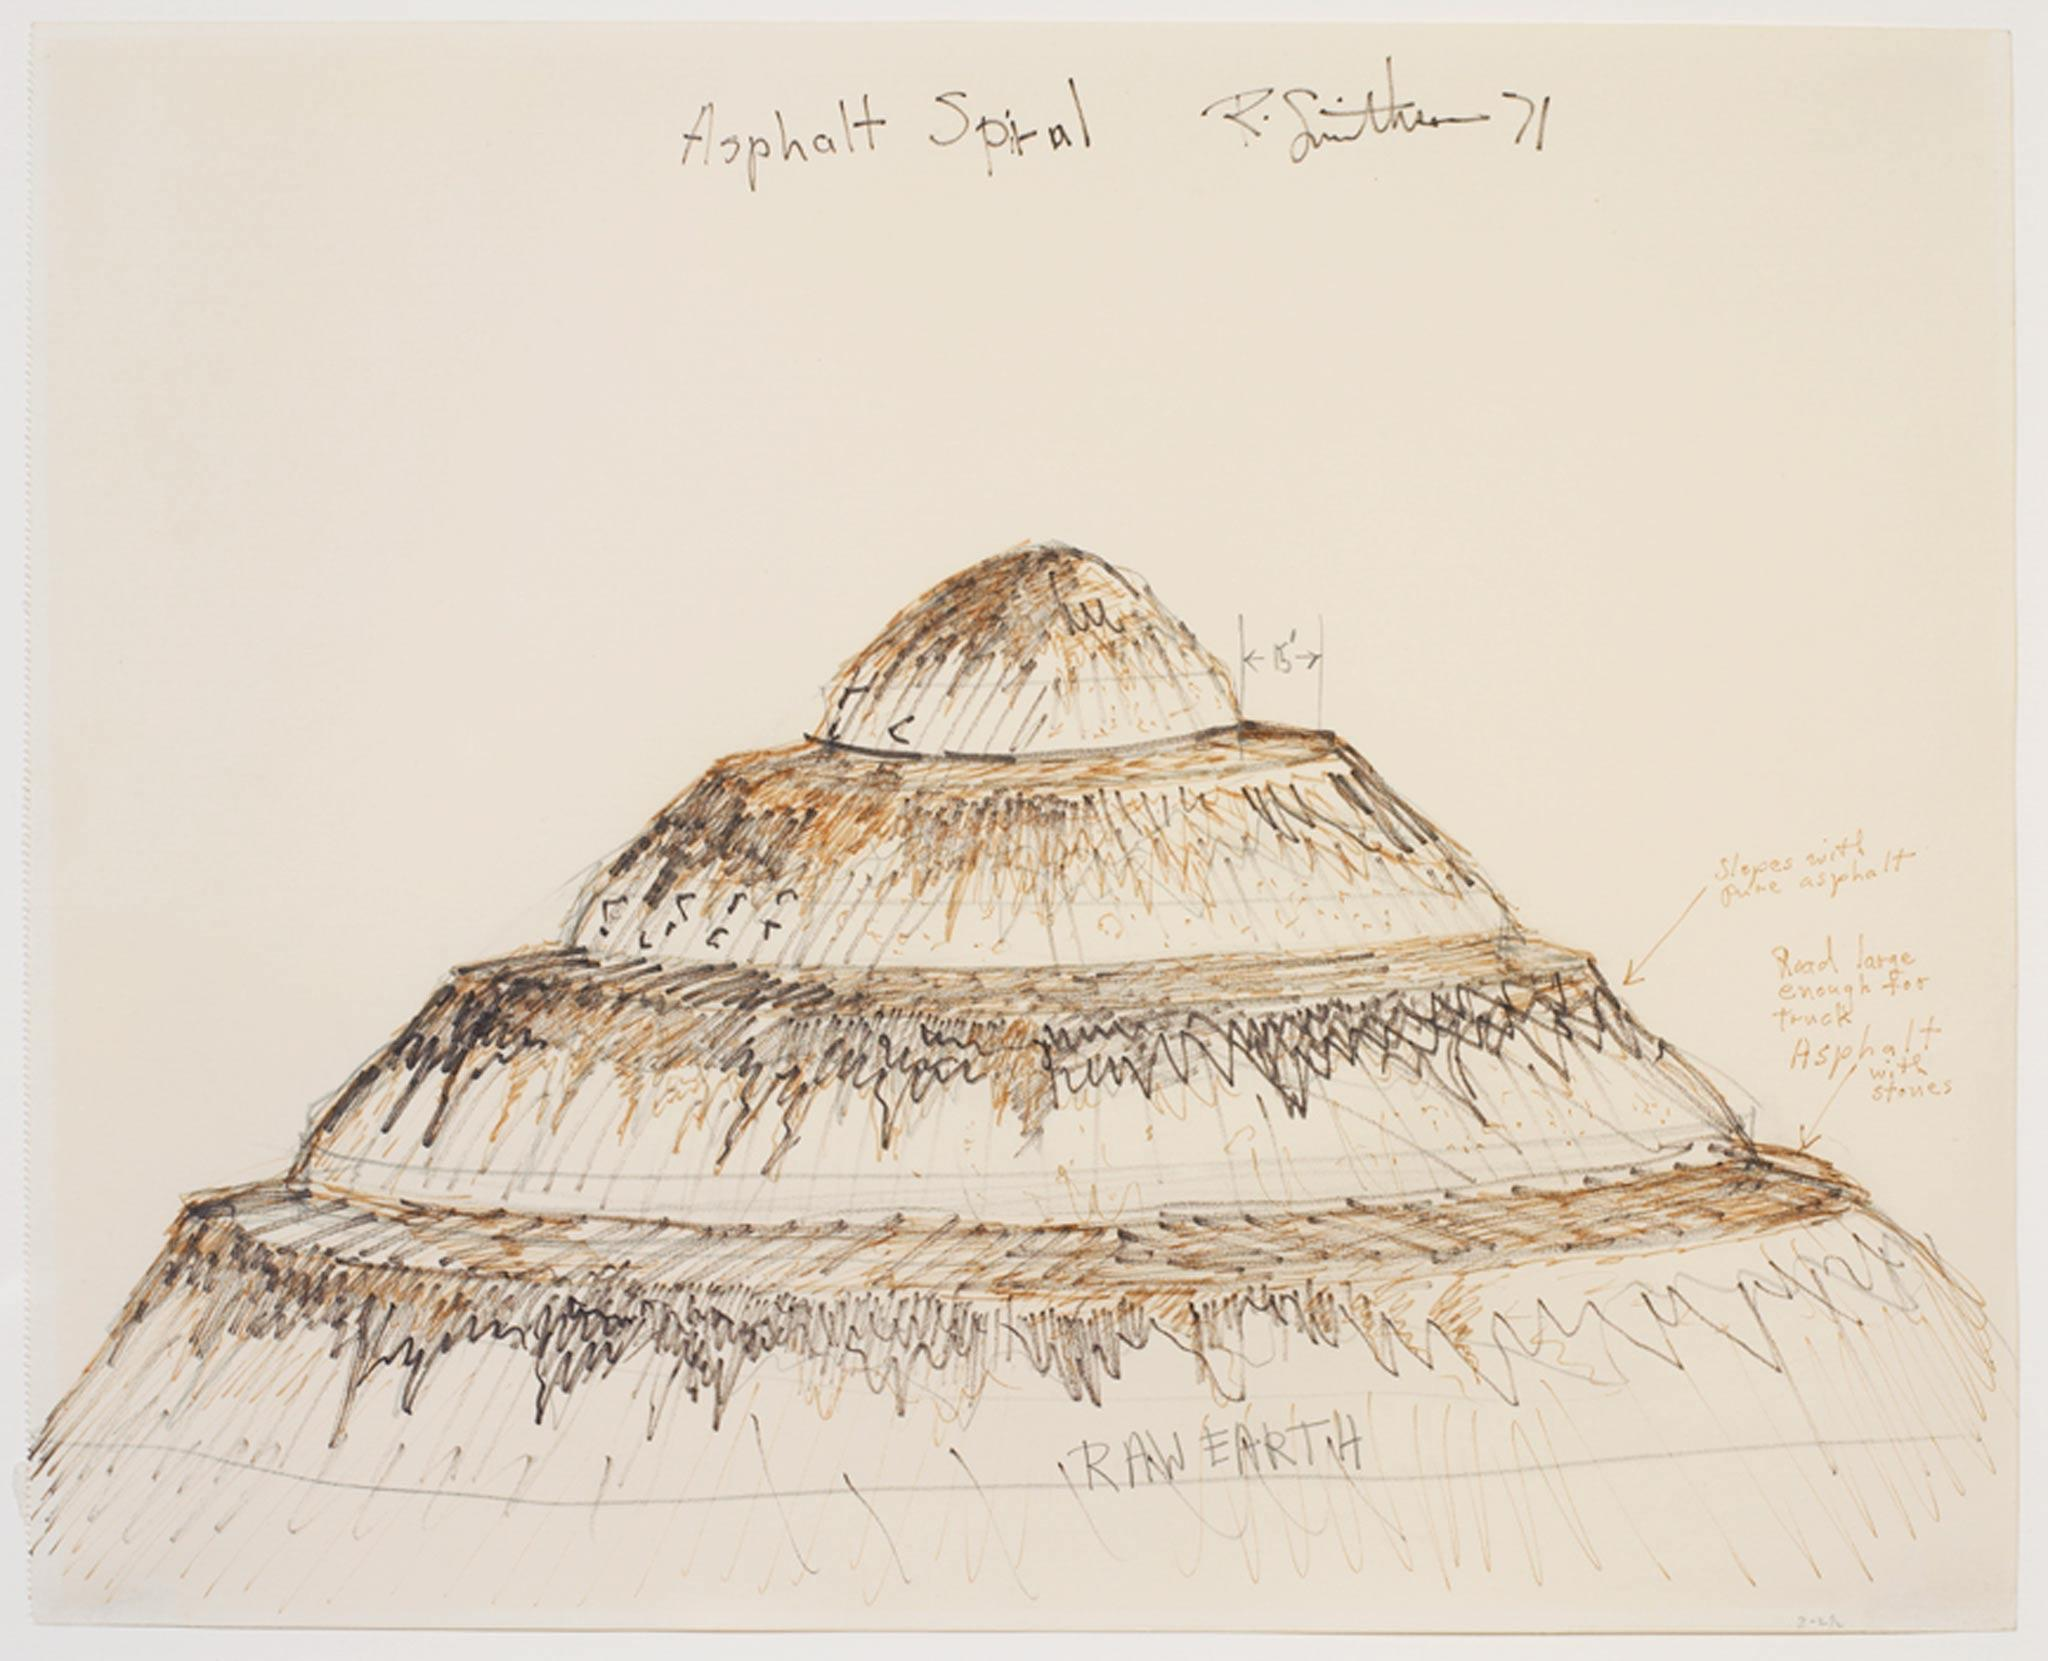 a drawing of a spiraling hill with asphalt on the pathways circling the hill. Handwritten notations